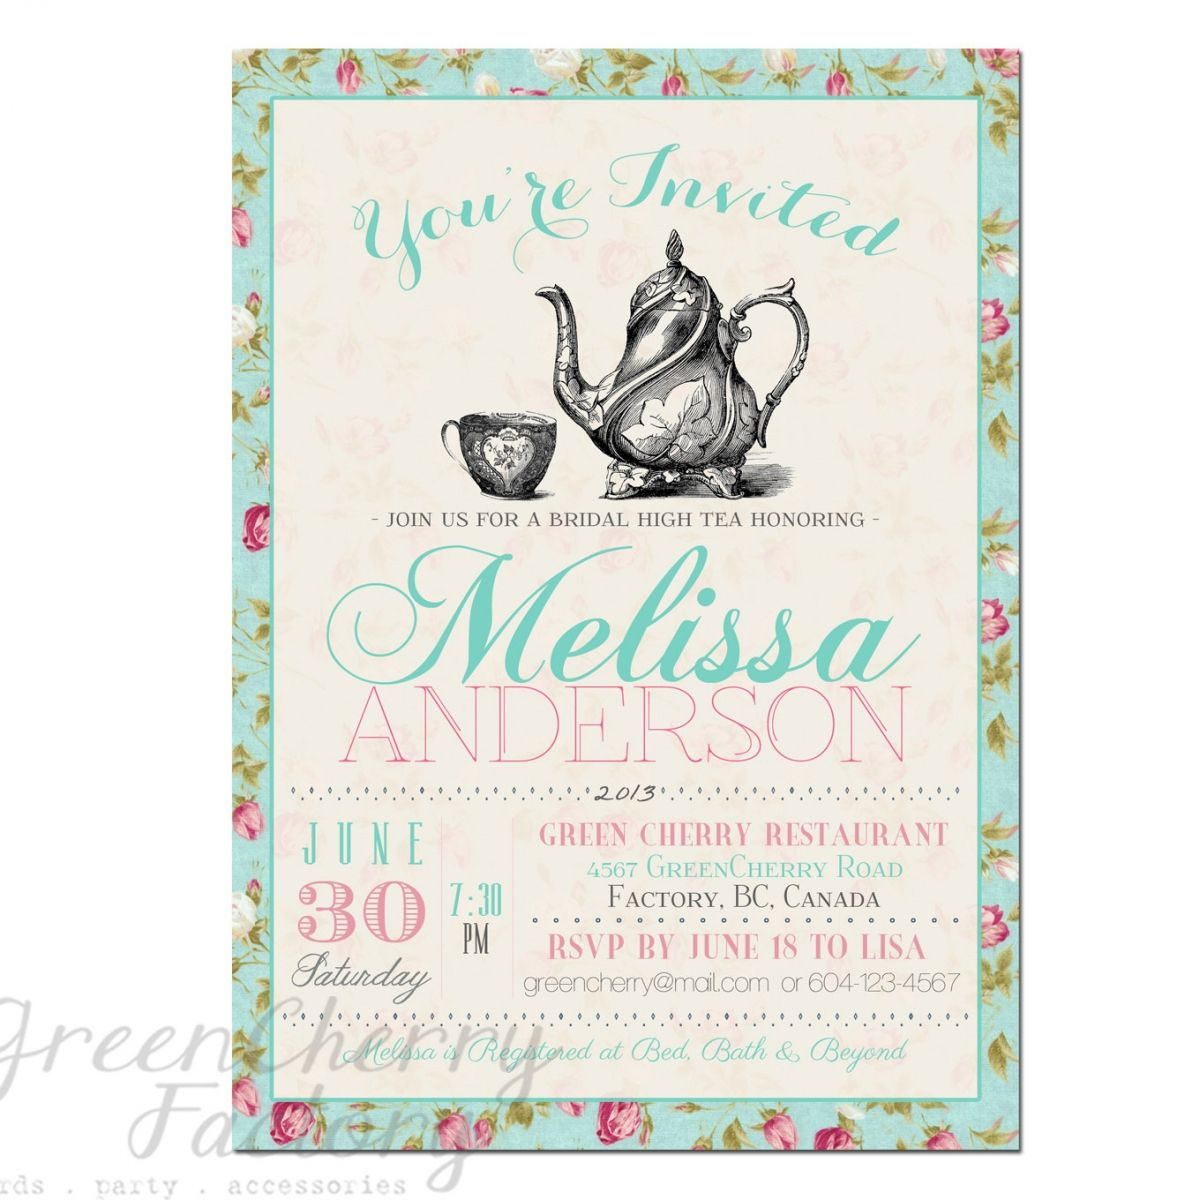 Tea Party Invitation Templates To Print | Free Printable Tea Party - Free Stork Party Invitations Printable